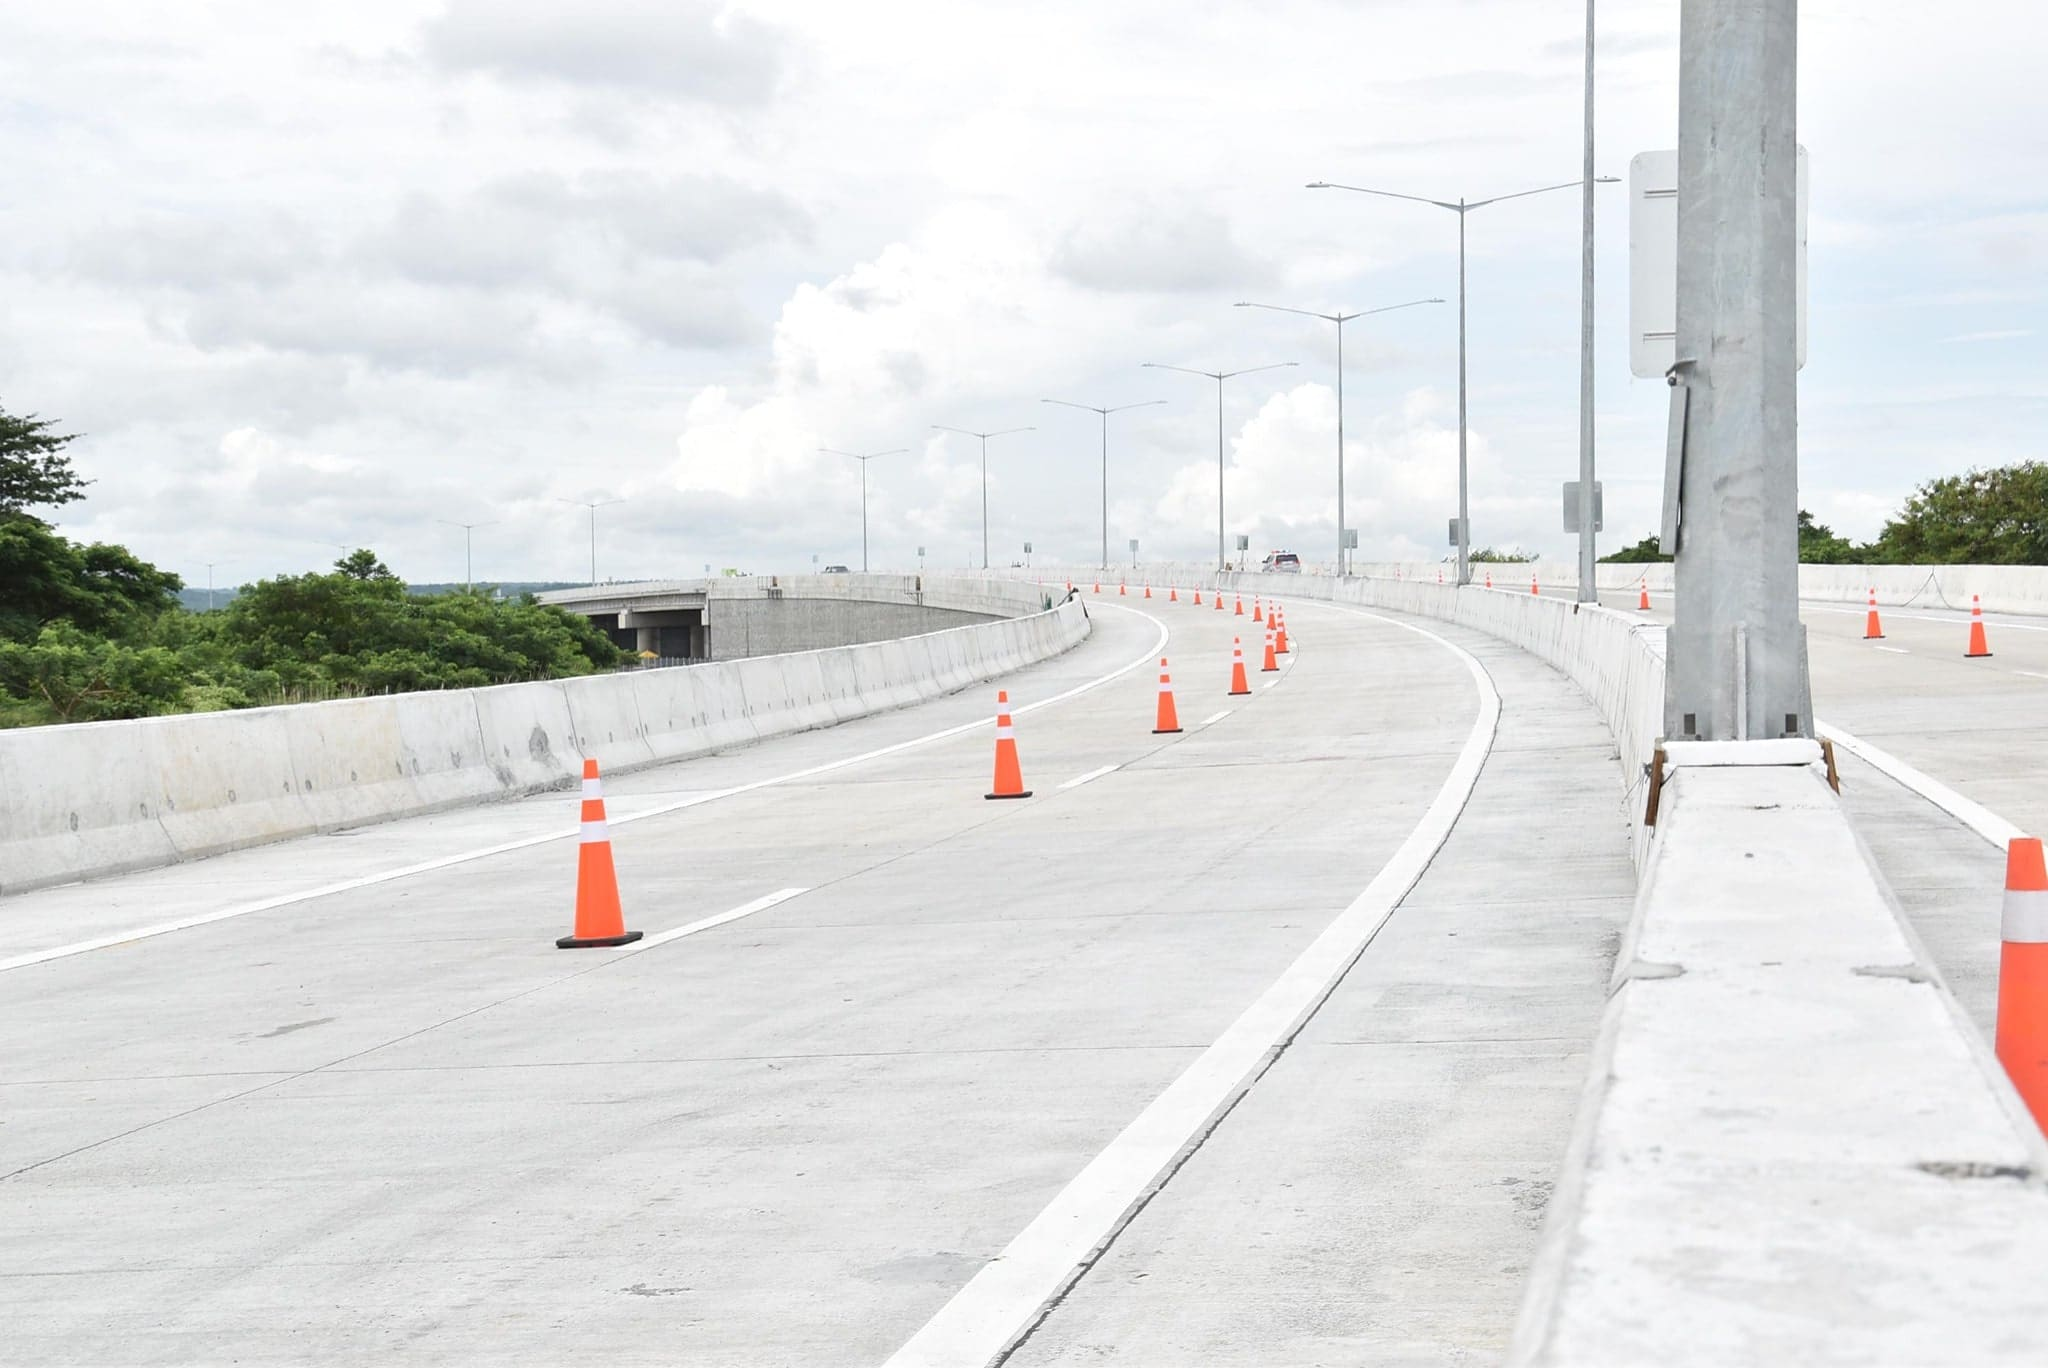 DPWH Opens First Segment of CALAX in Time for 'Undas'